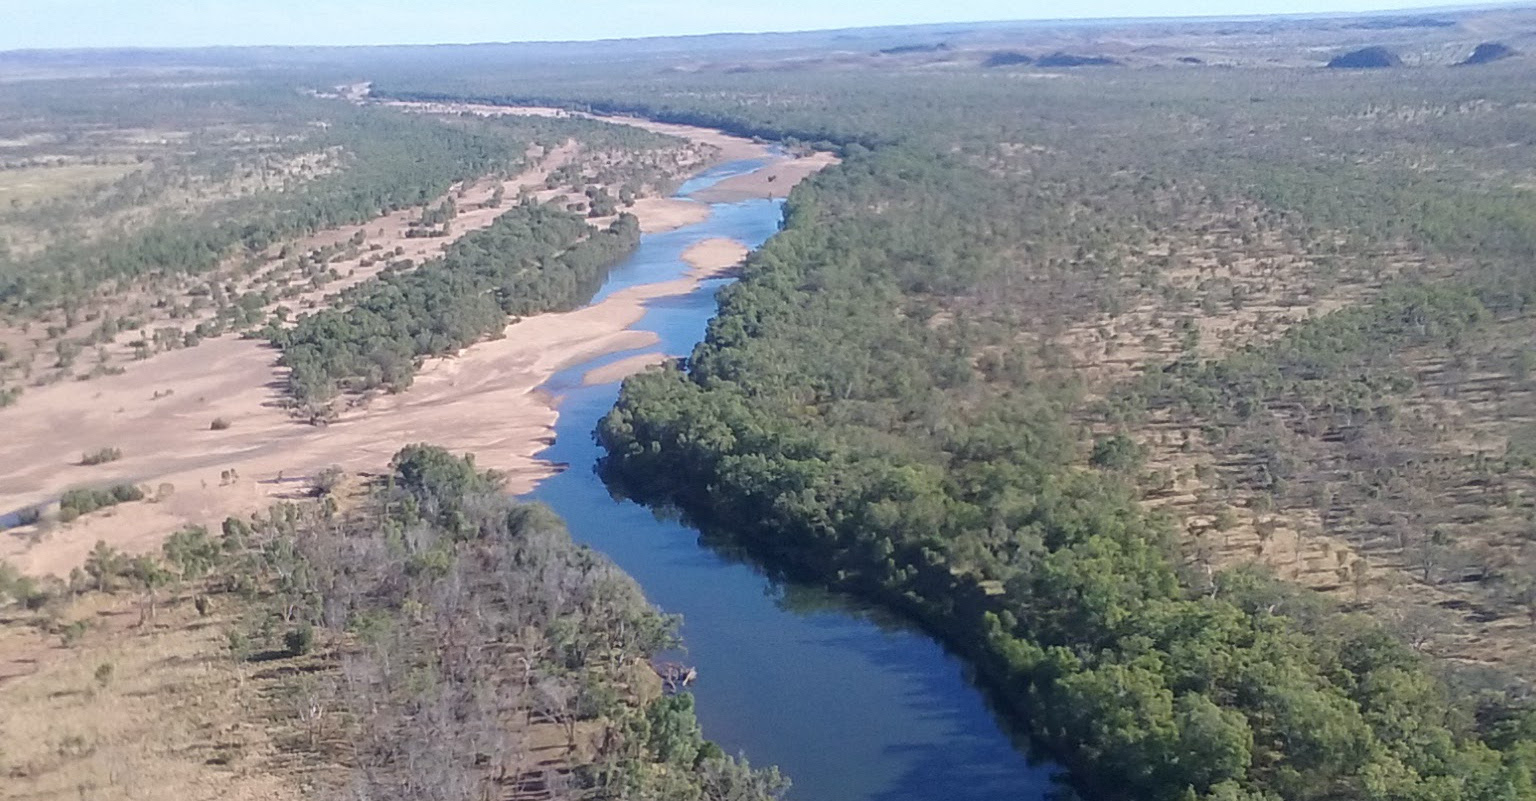 Aerial shot of a section of the Fitzroy catchment in Western Australia's Kimberley region showig a river snaking through a treed landscape.